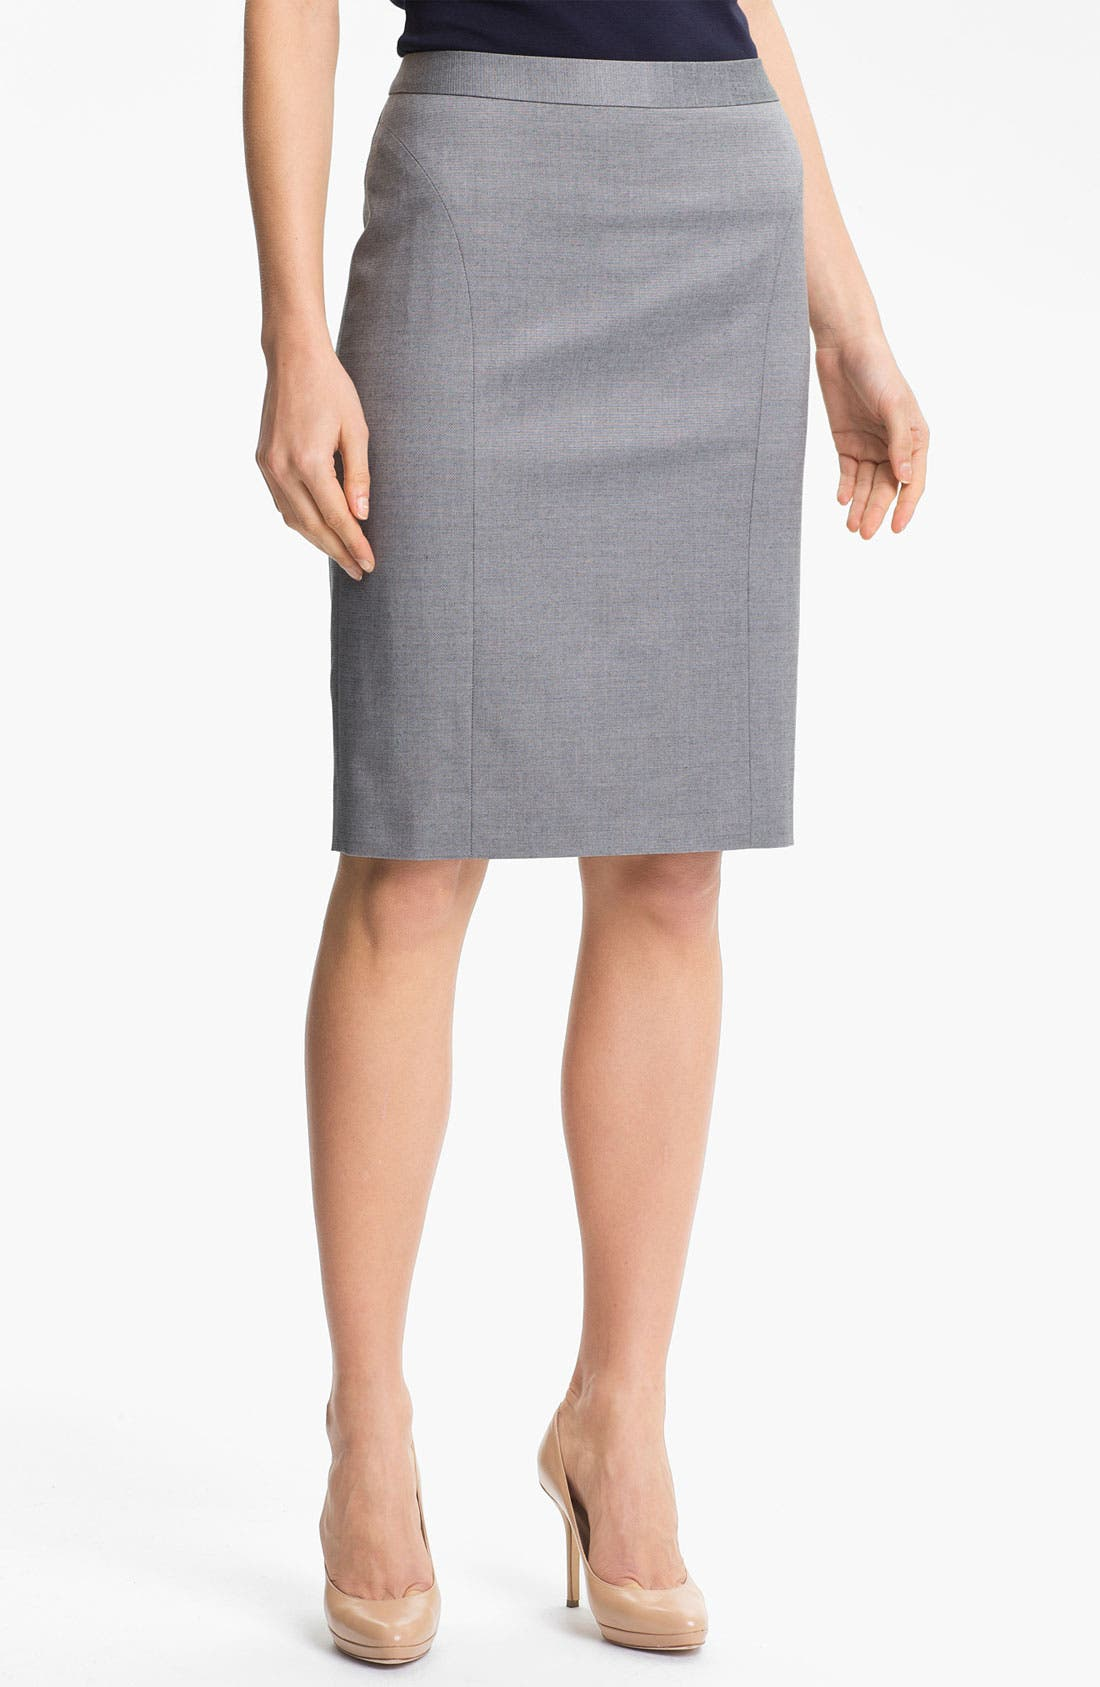 Alternate Image 1 Selected - Classiques Entier 'Platine Weave' Skirt